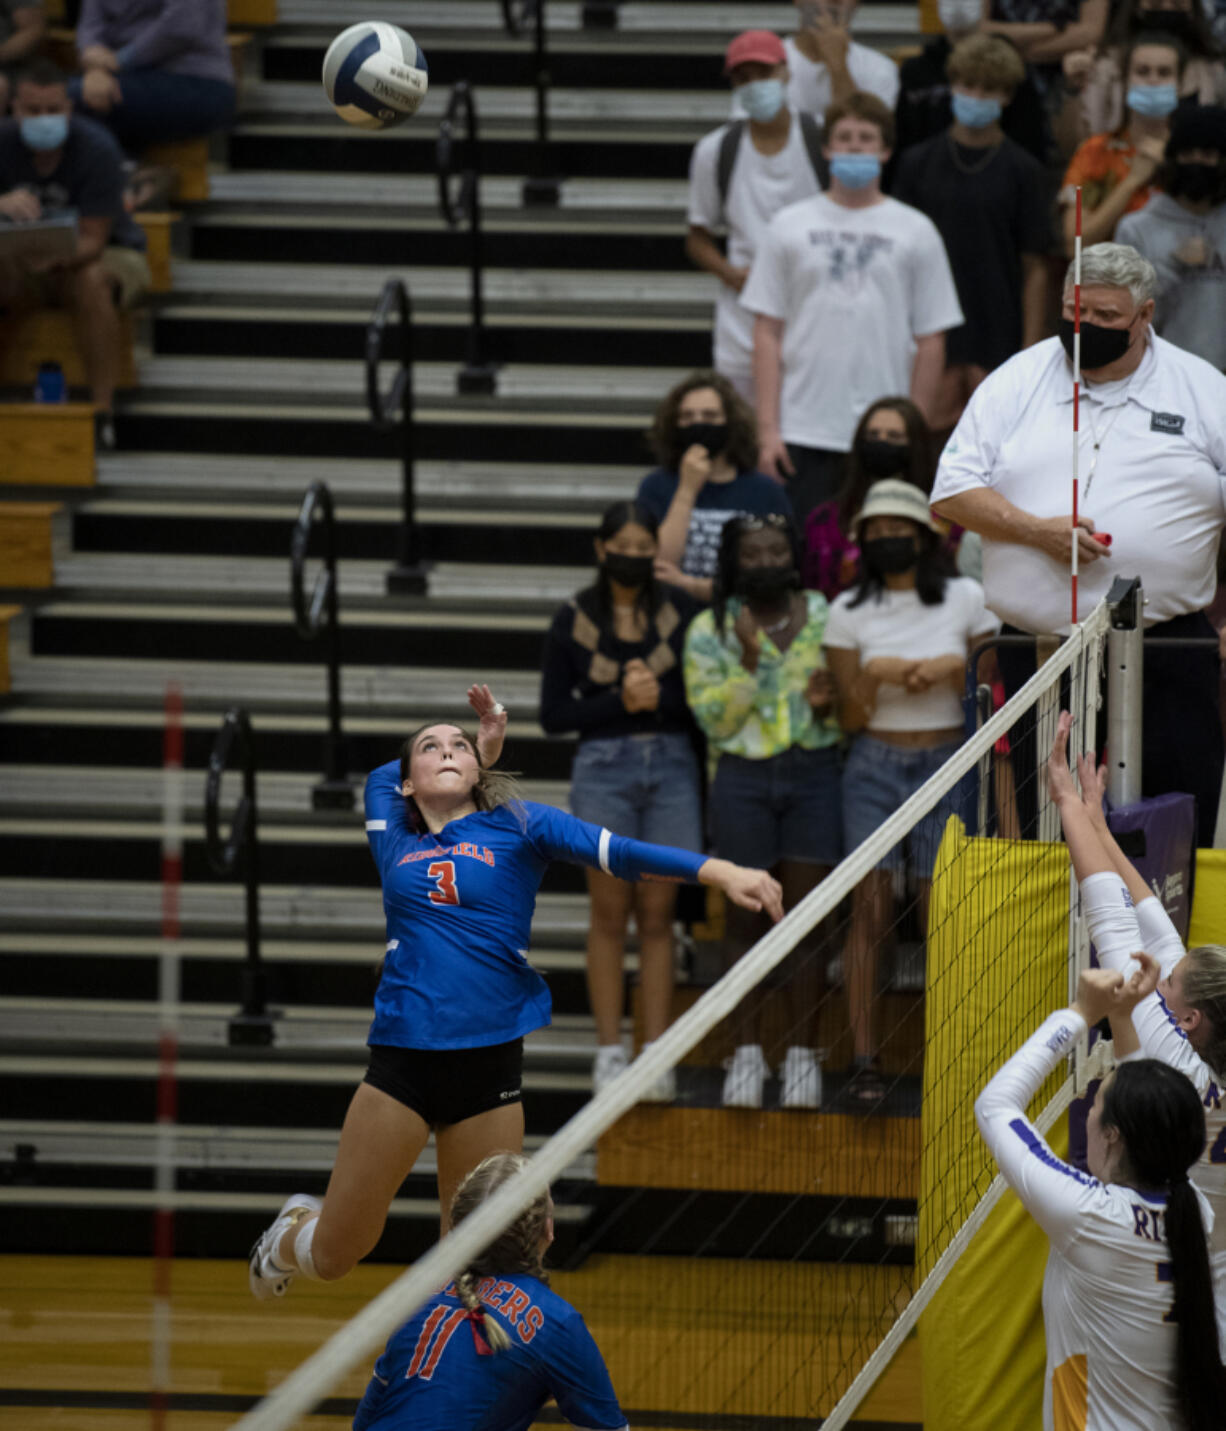 Ridgefield junior hitter Paige Stepaniuk loads up for an attack during the 2A Greater St. Helens League volleyball match on Tuesday at Columbia River High School. The Spudders won 3-0.